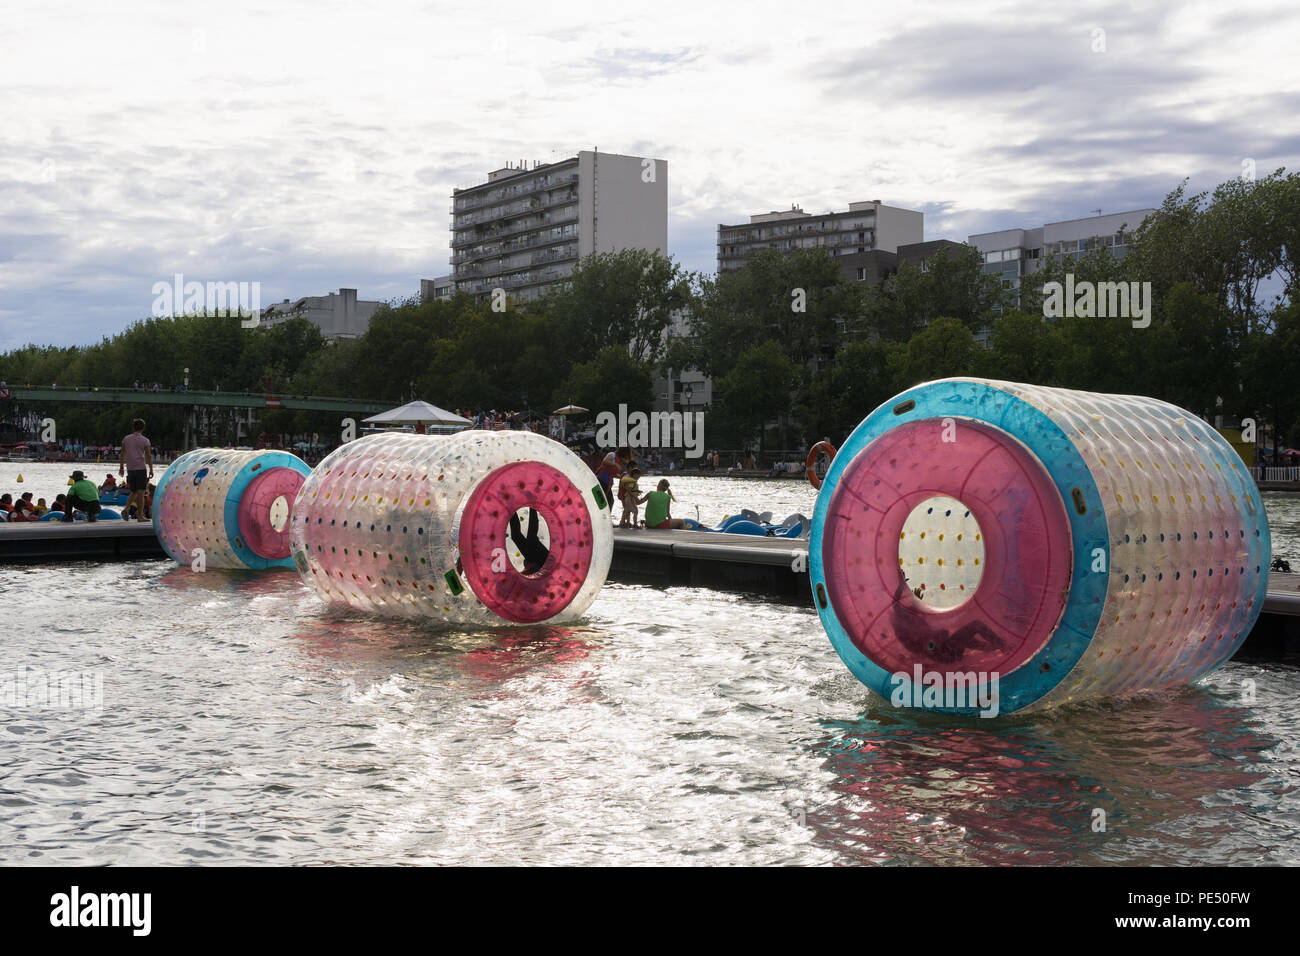 Water rolling balls in an open air pool during the Paris Plages event, France. - Stock Image